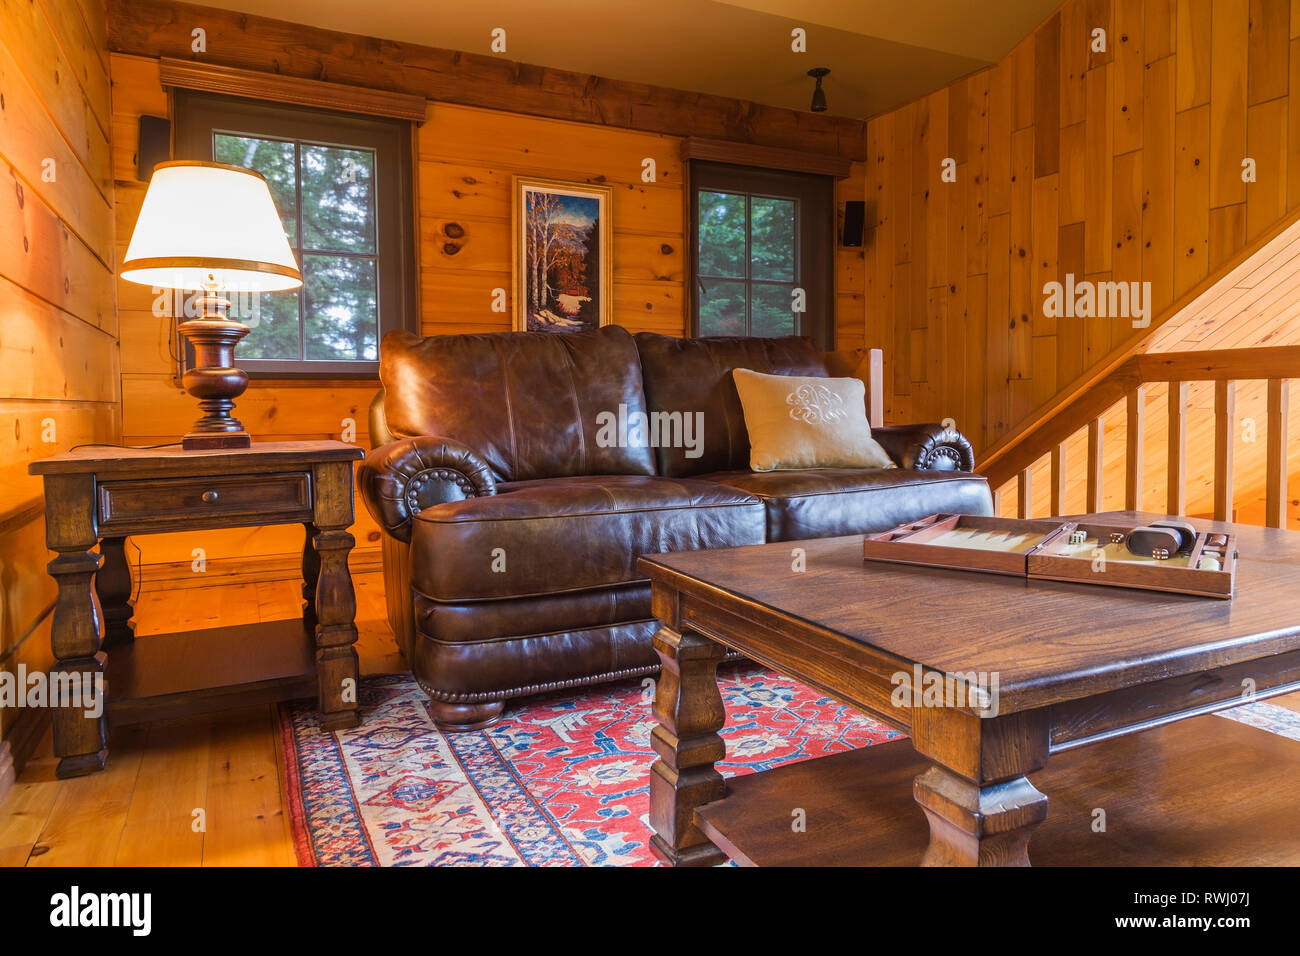 Brown Leather Sofa With Board Game On Top Of Wooden Coffee Table In The  Boudoir On The Mezzanine Inside A Milled Cottage Style Flat Log Profile  Home,